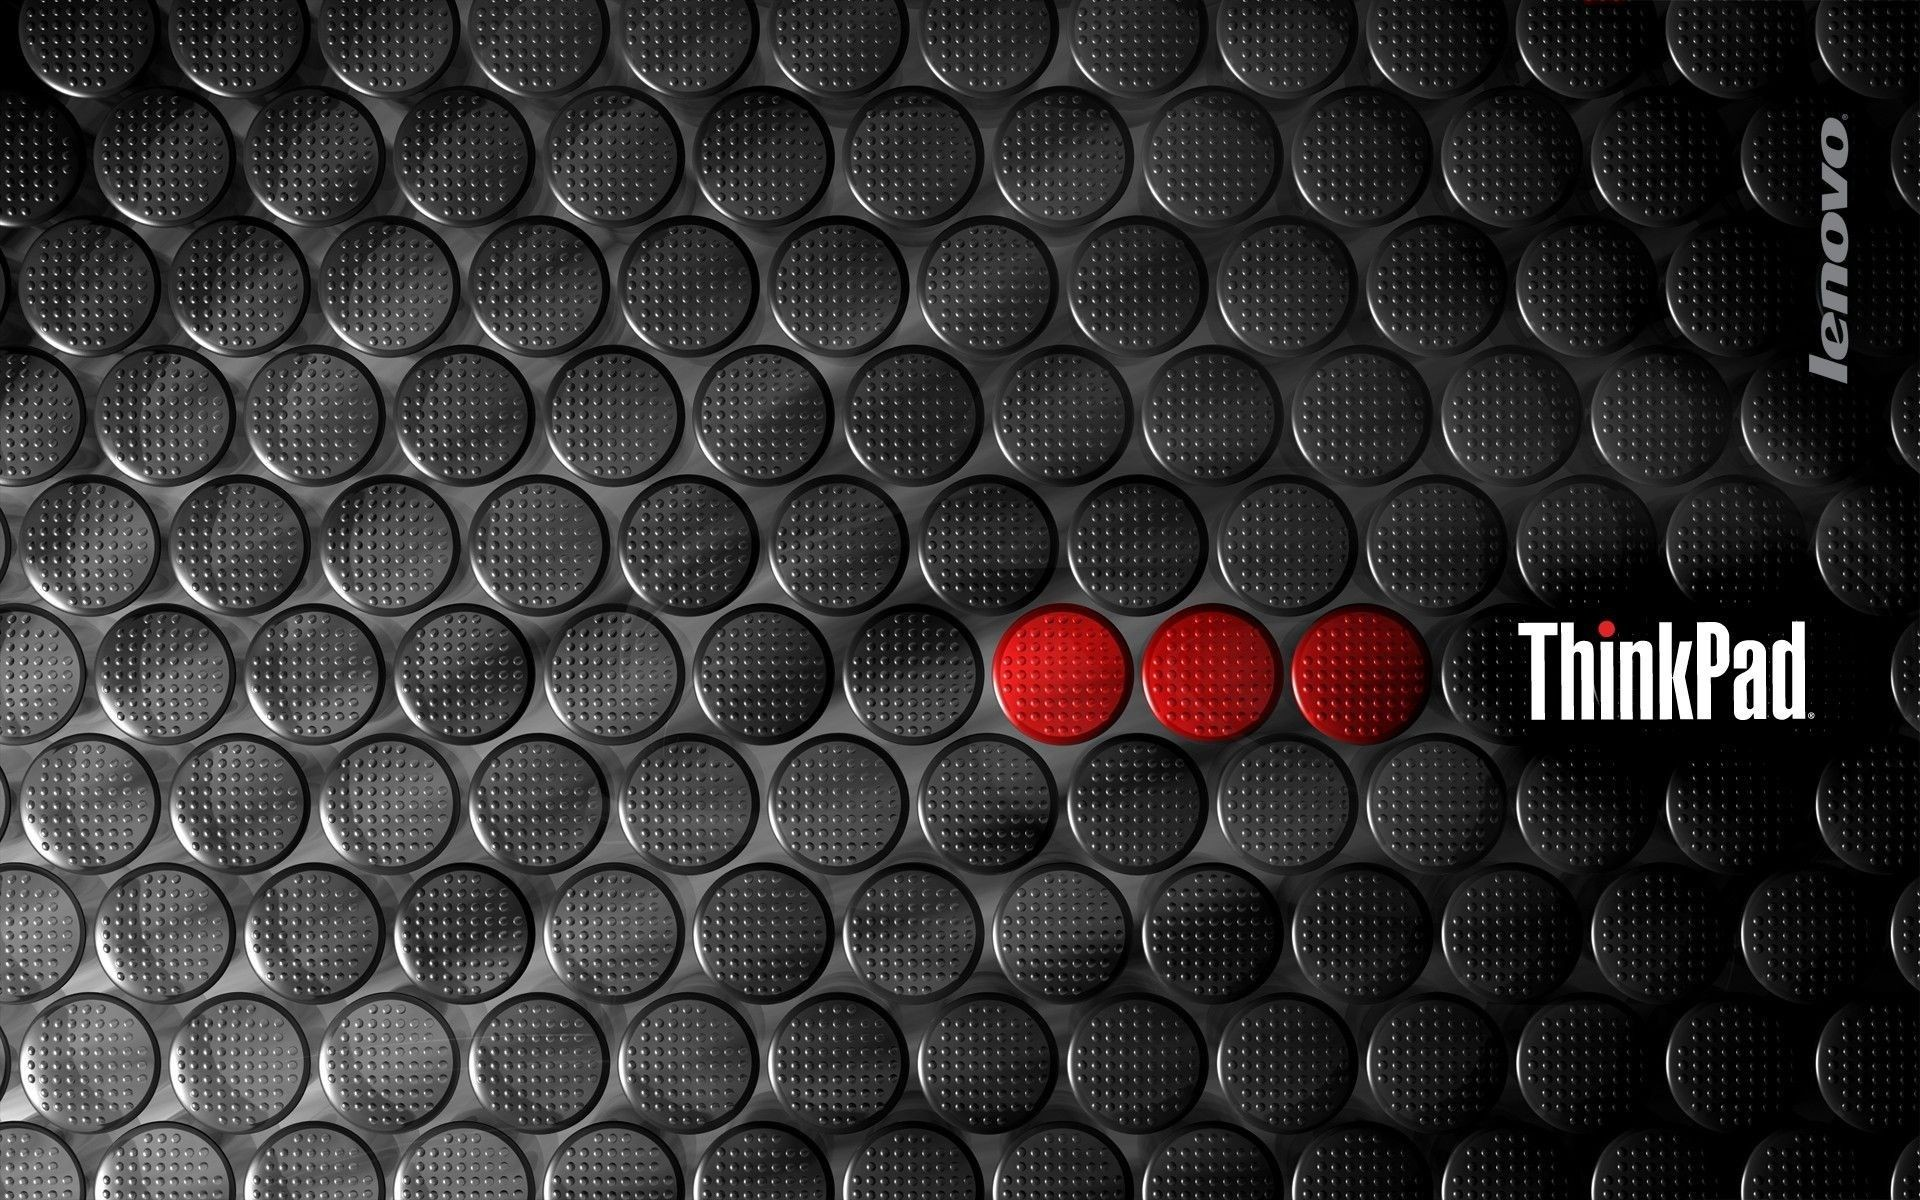 1920x1200 Cool Lenovo Thinkpad Wallpaper